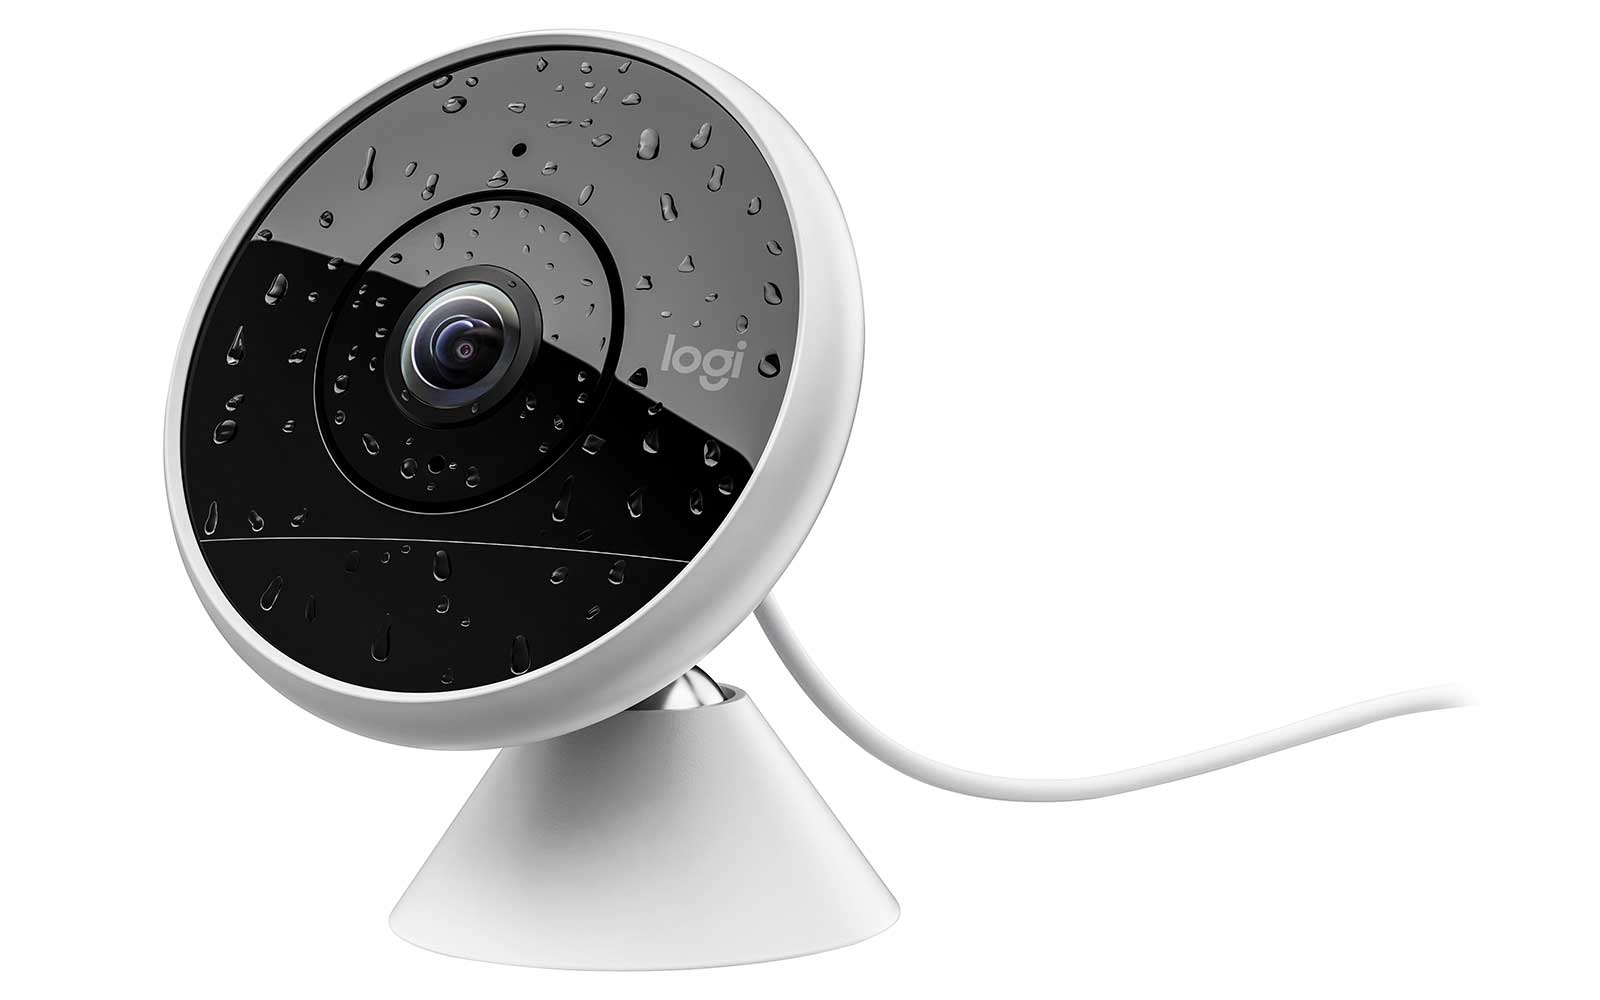 LG Home Security Cameras